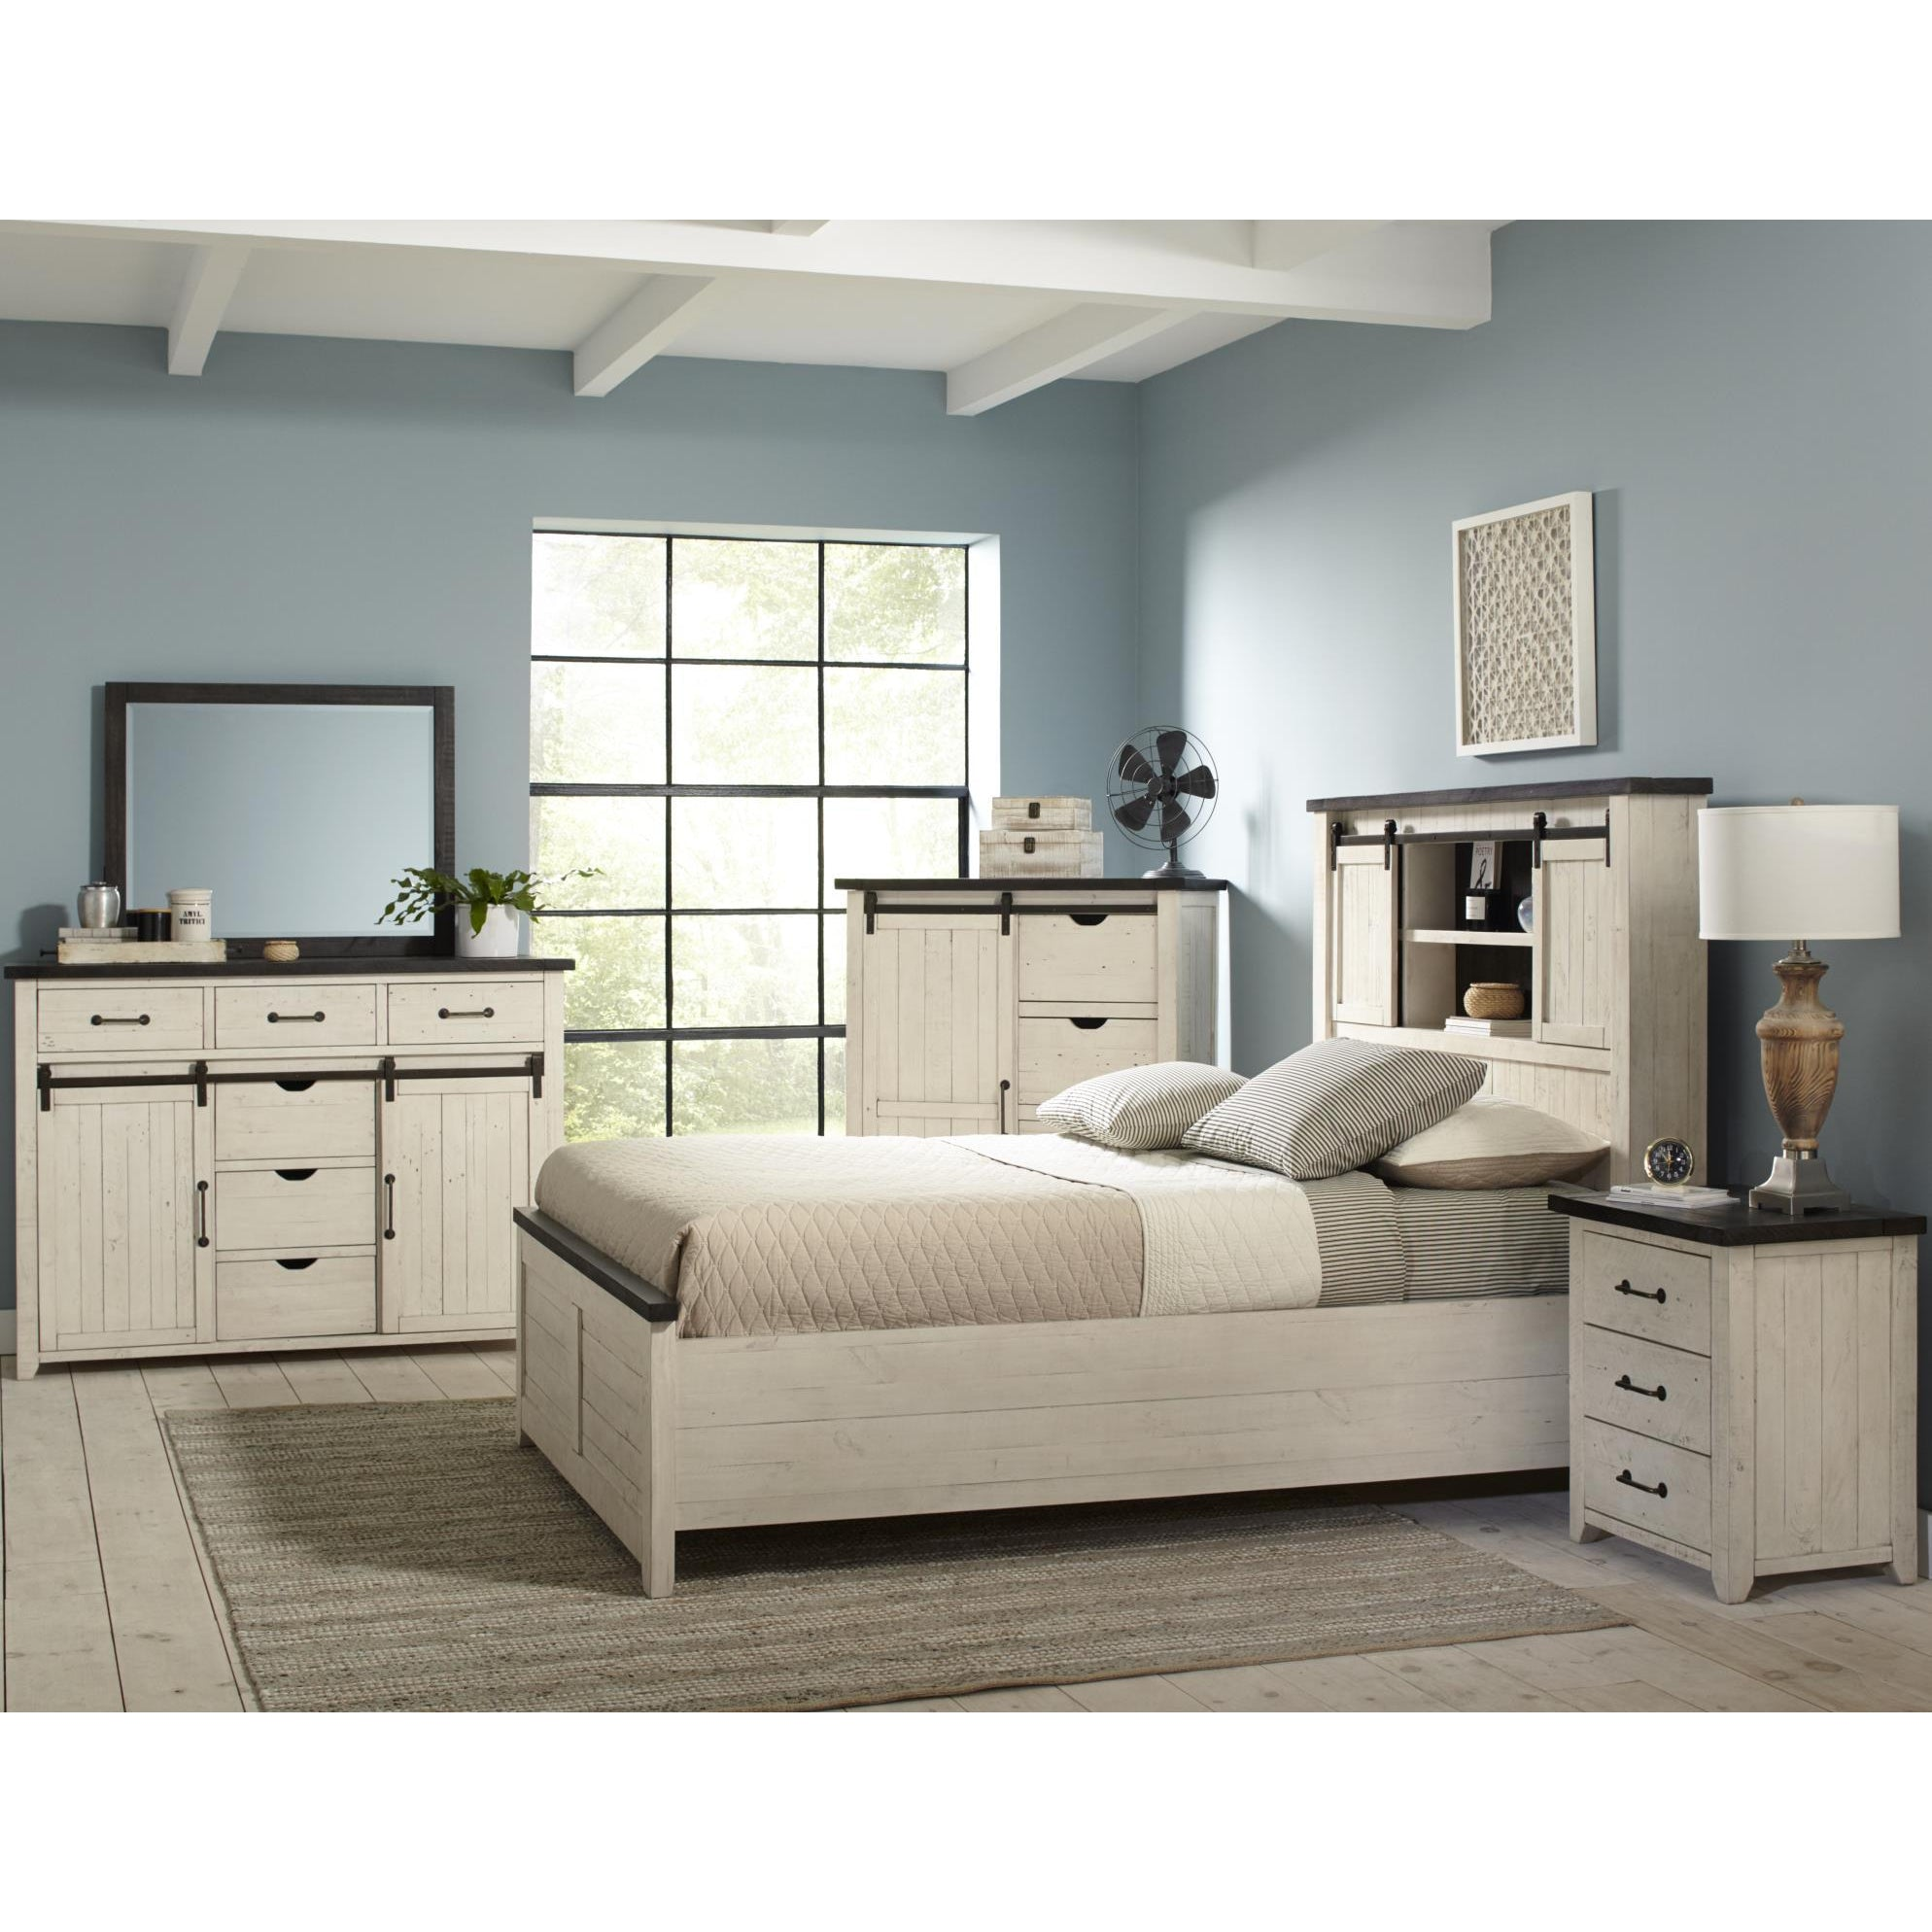 Urban Loft 4-Piece Queen Bedroom Set (Queen Bed, Dresser, 2 Nightstands)